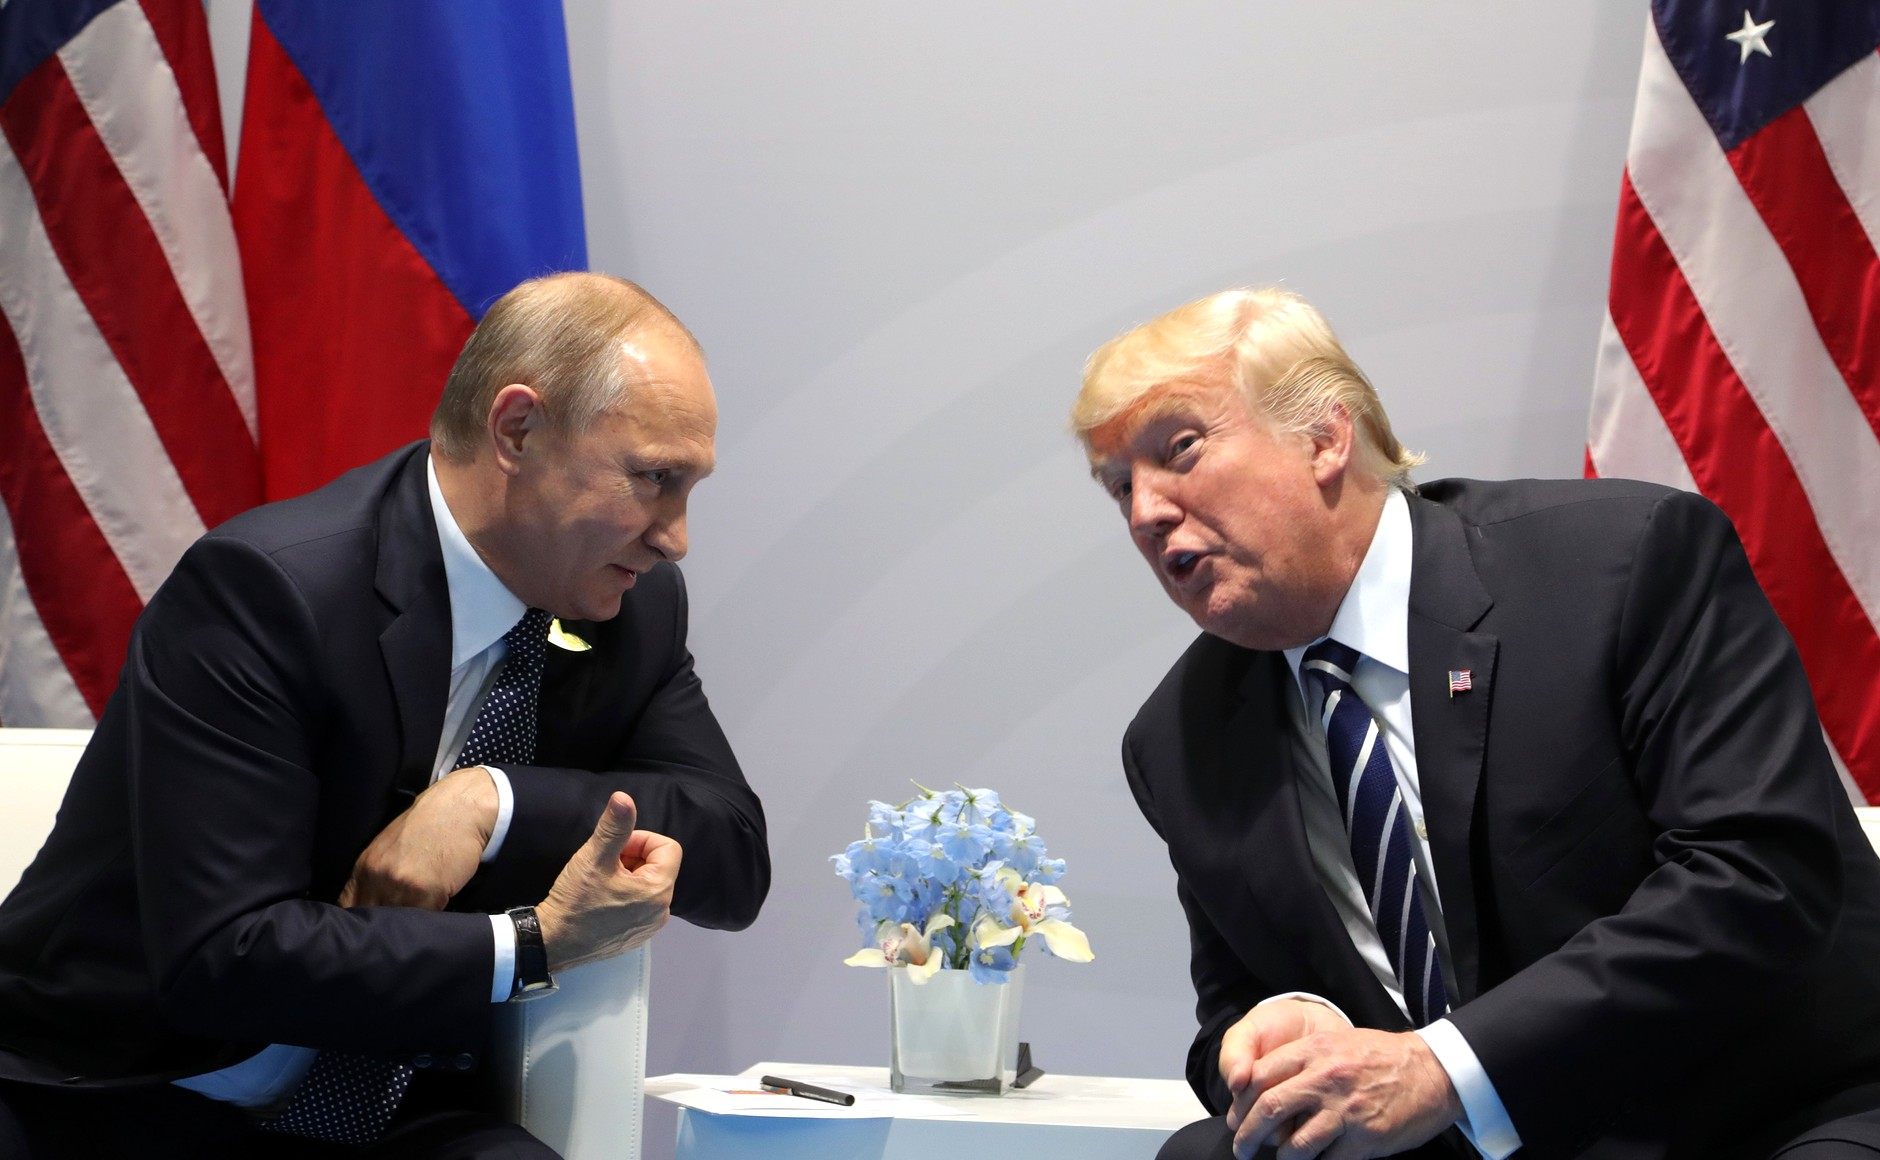 Vladimir Putin and Donald Trump at G20 meeting, July 7, 2017